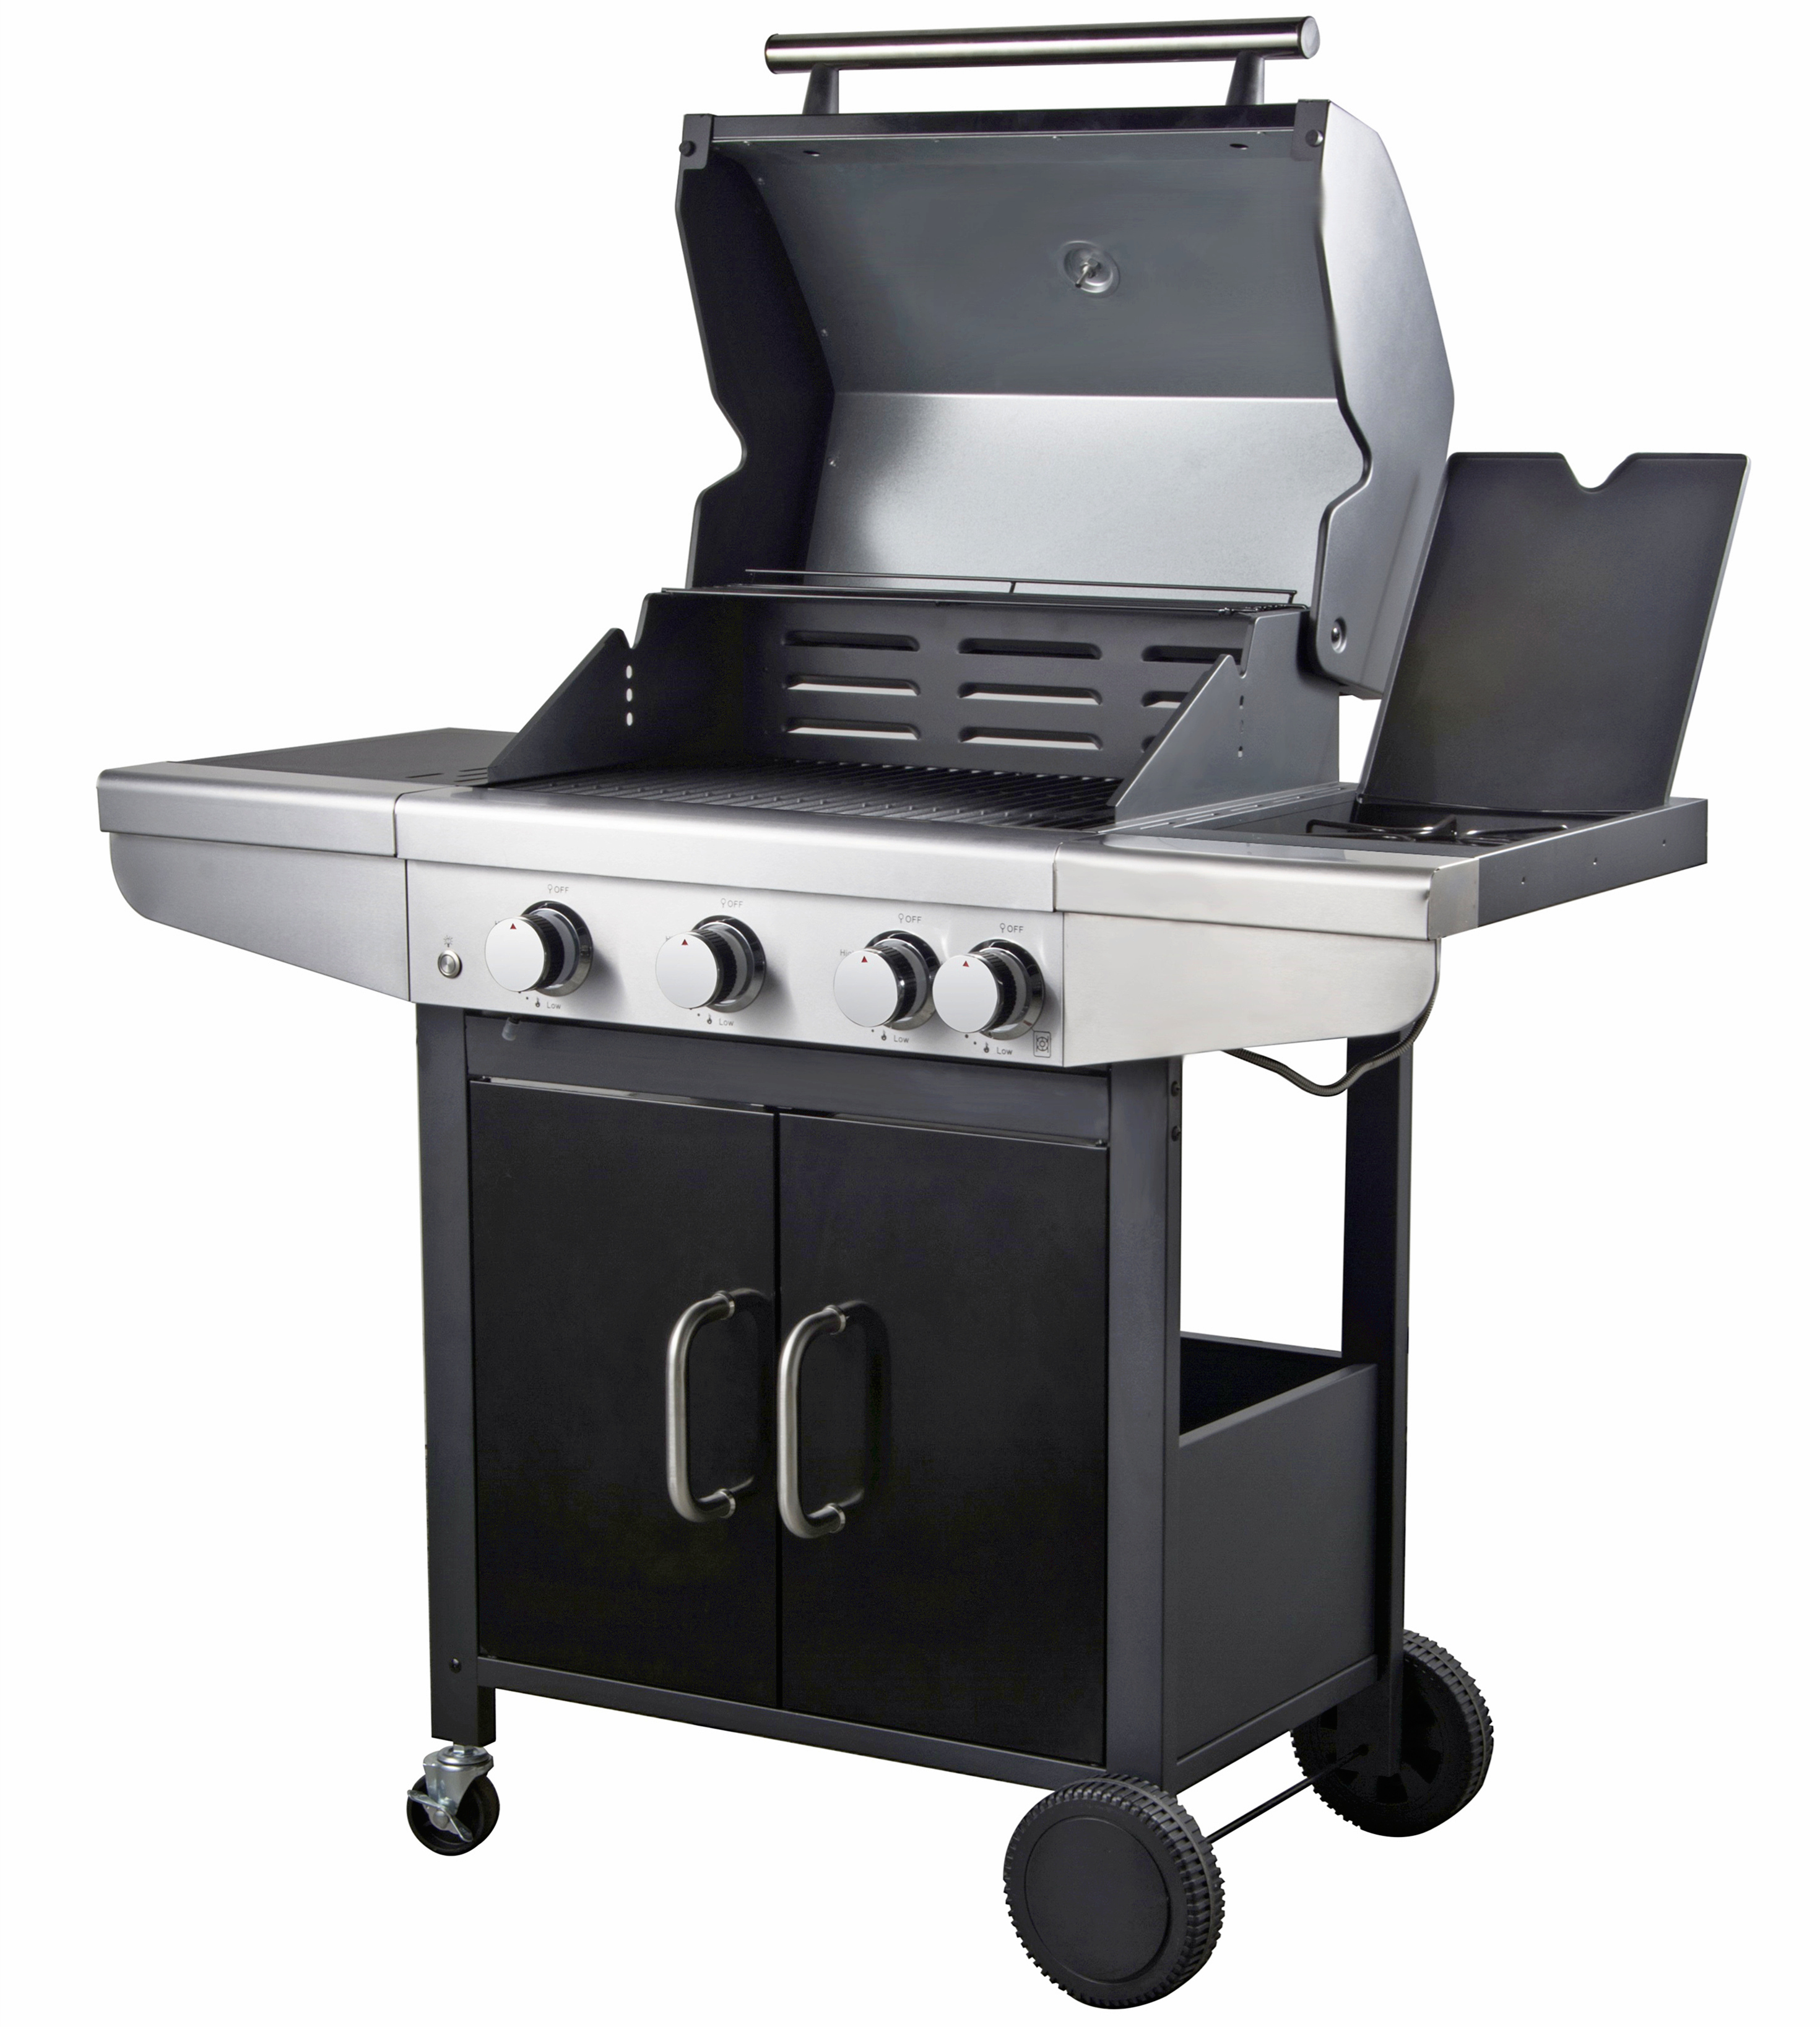 3 Burner Gas Grill for Garden